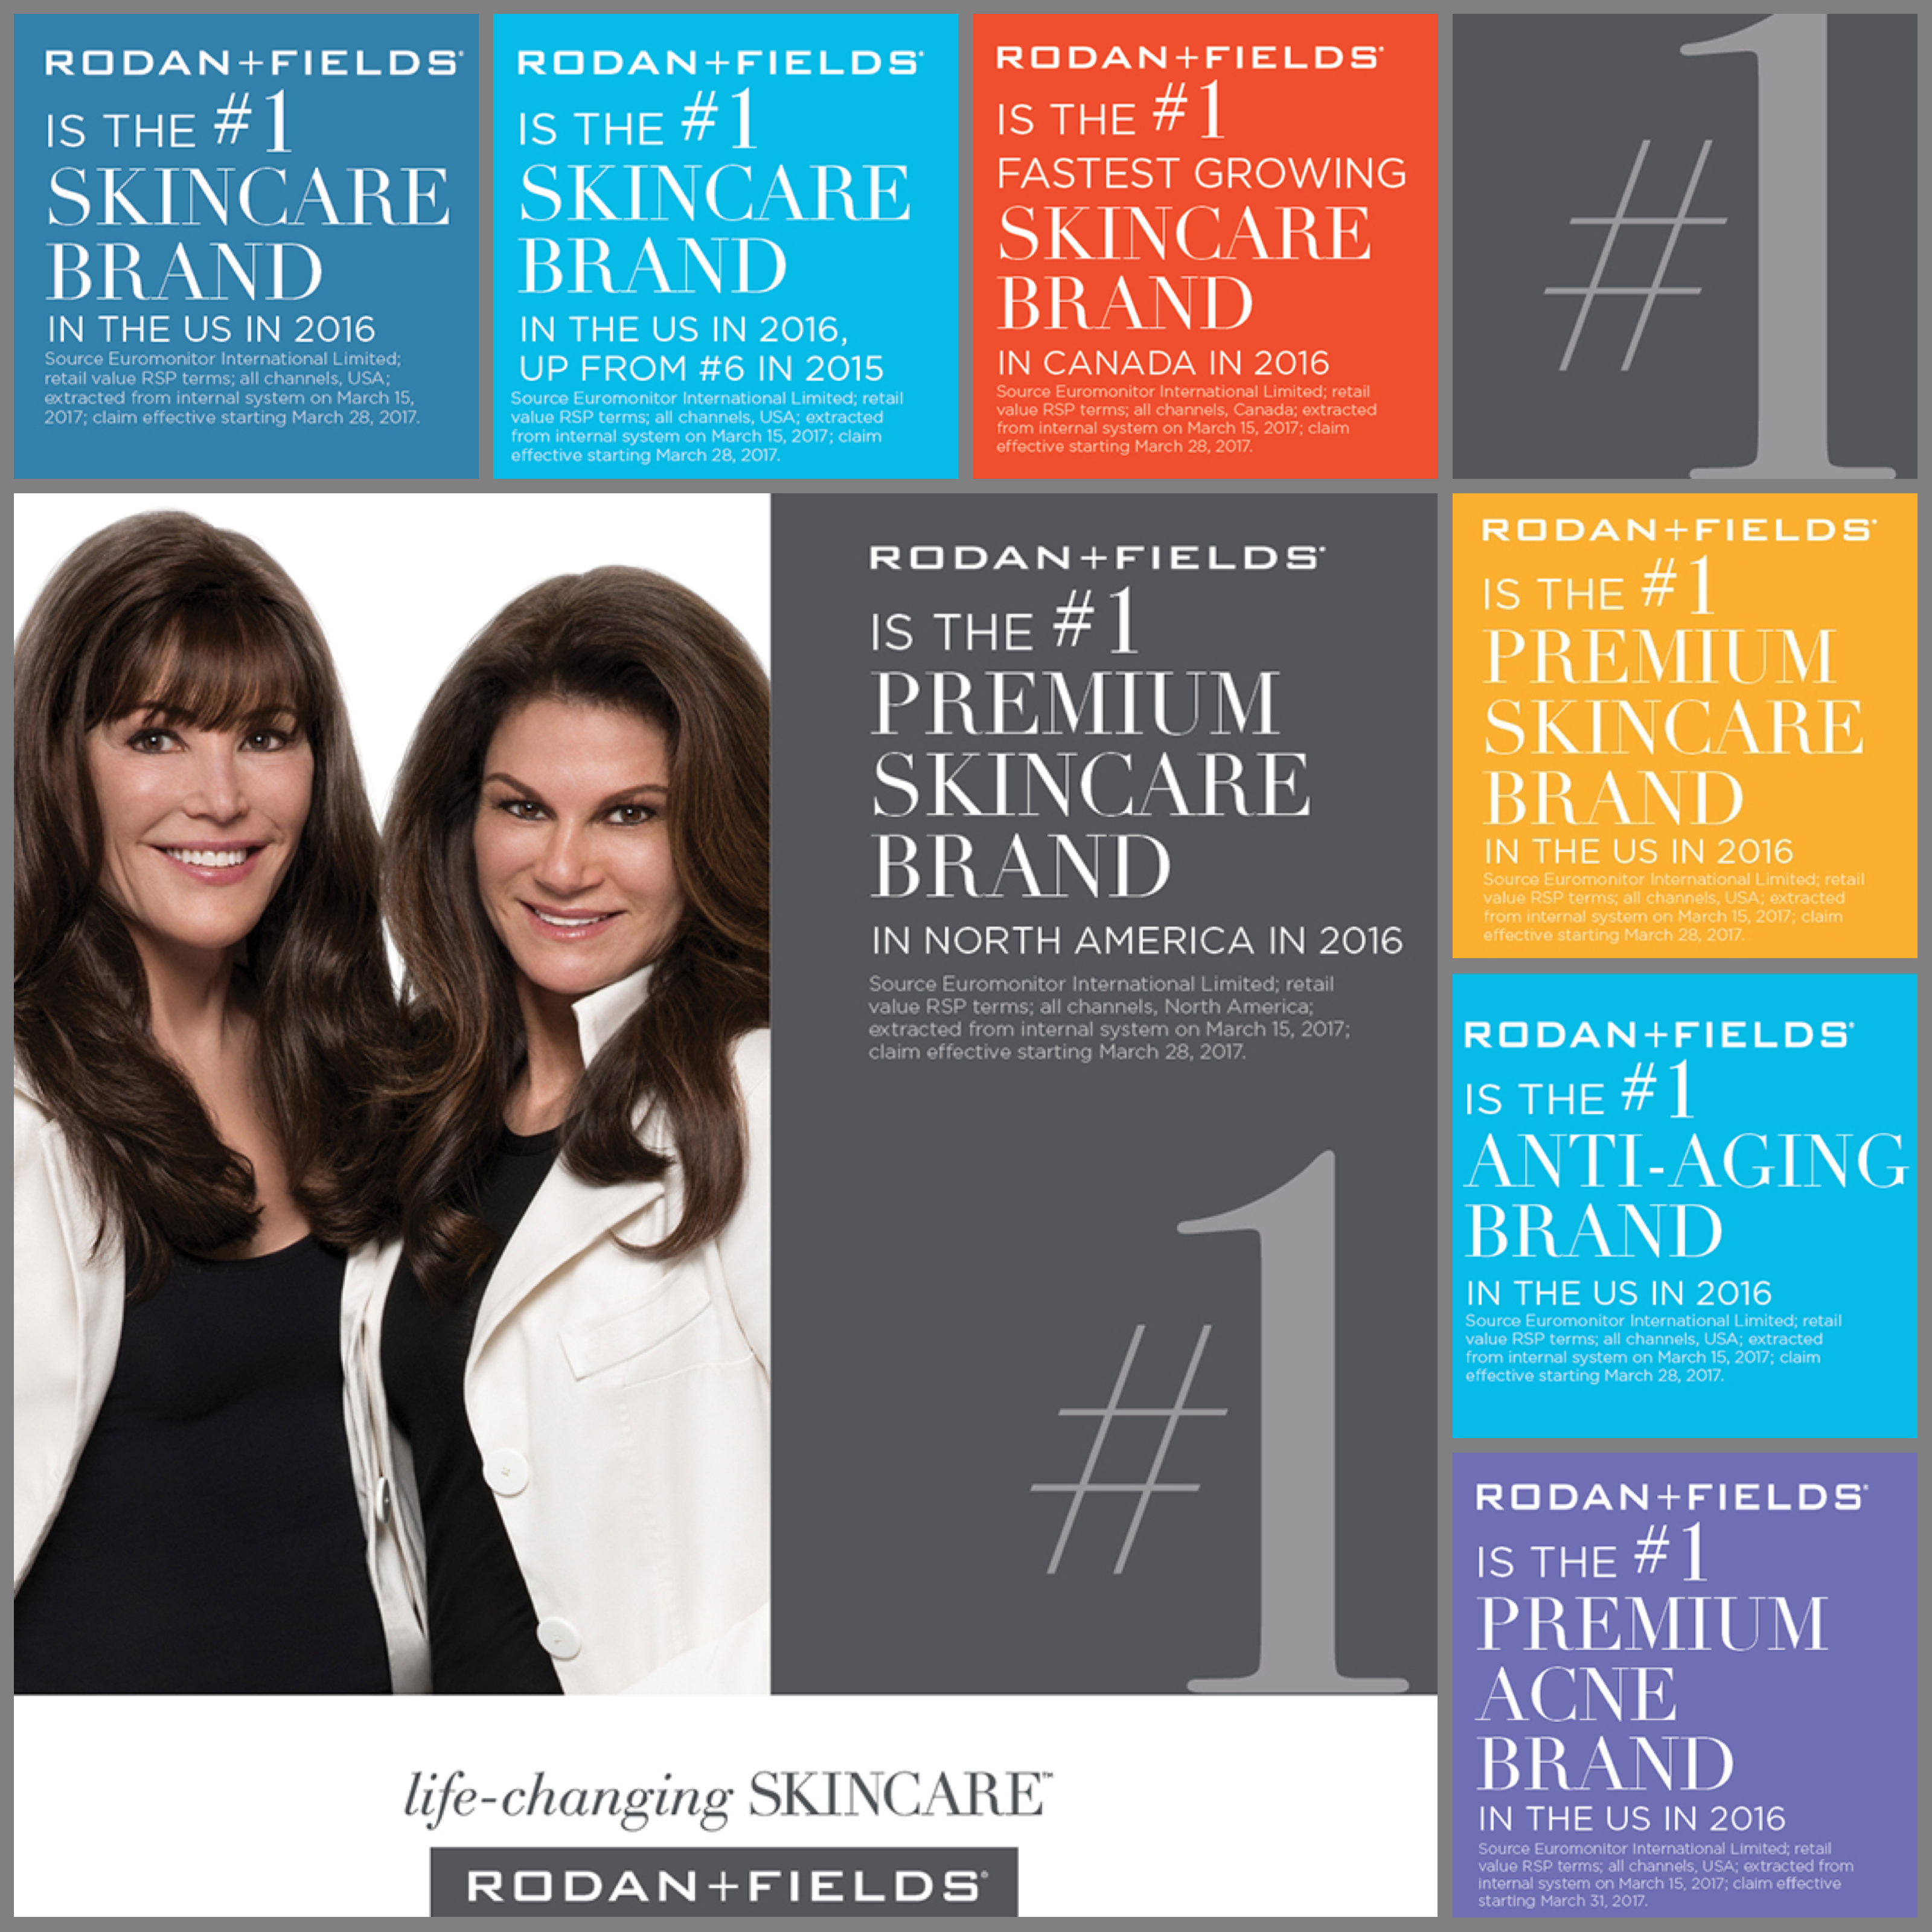 Rodan Fields Is Now The 1 Skincare Brand In The Us Not Just Premium Skincare But Across All Price Poin Premium Skincare Rodan And Fields Skin Care